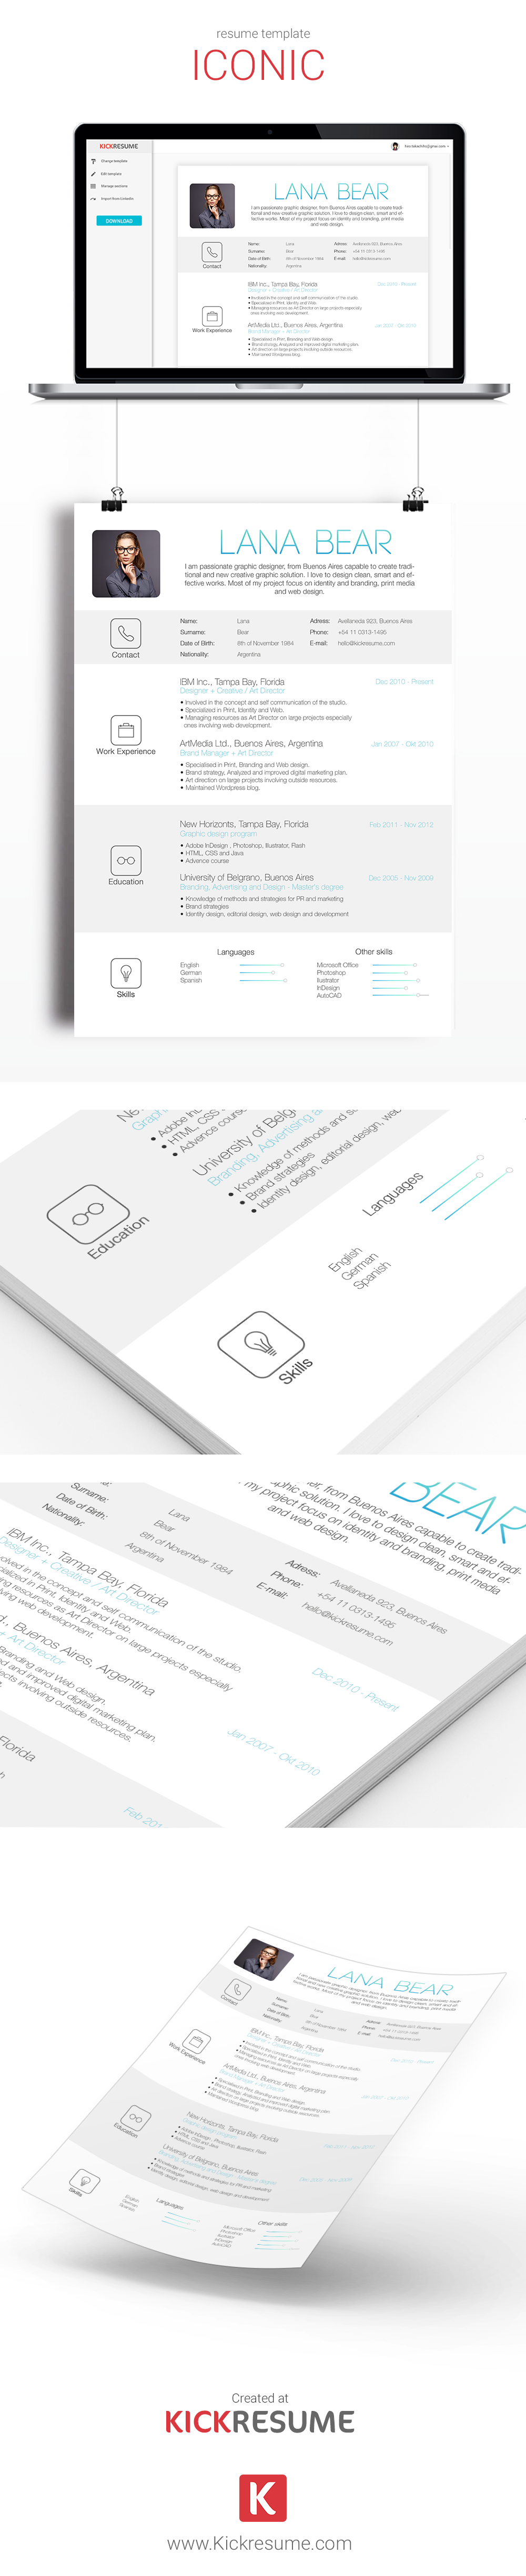 Choose One Of Our Templates Created By Designers And Approved By